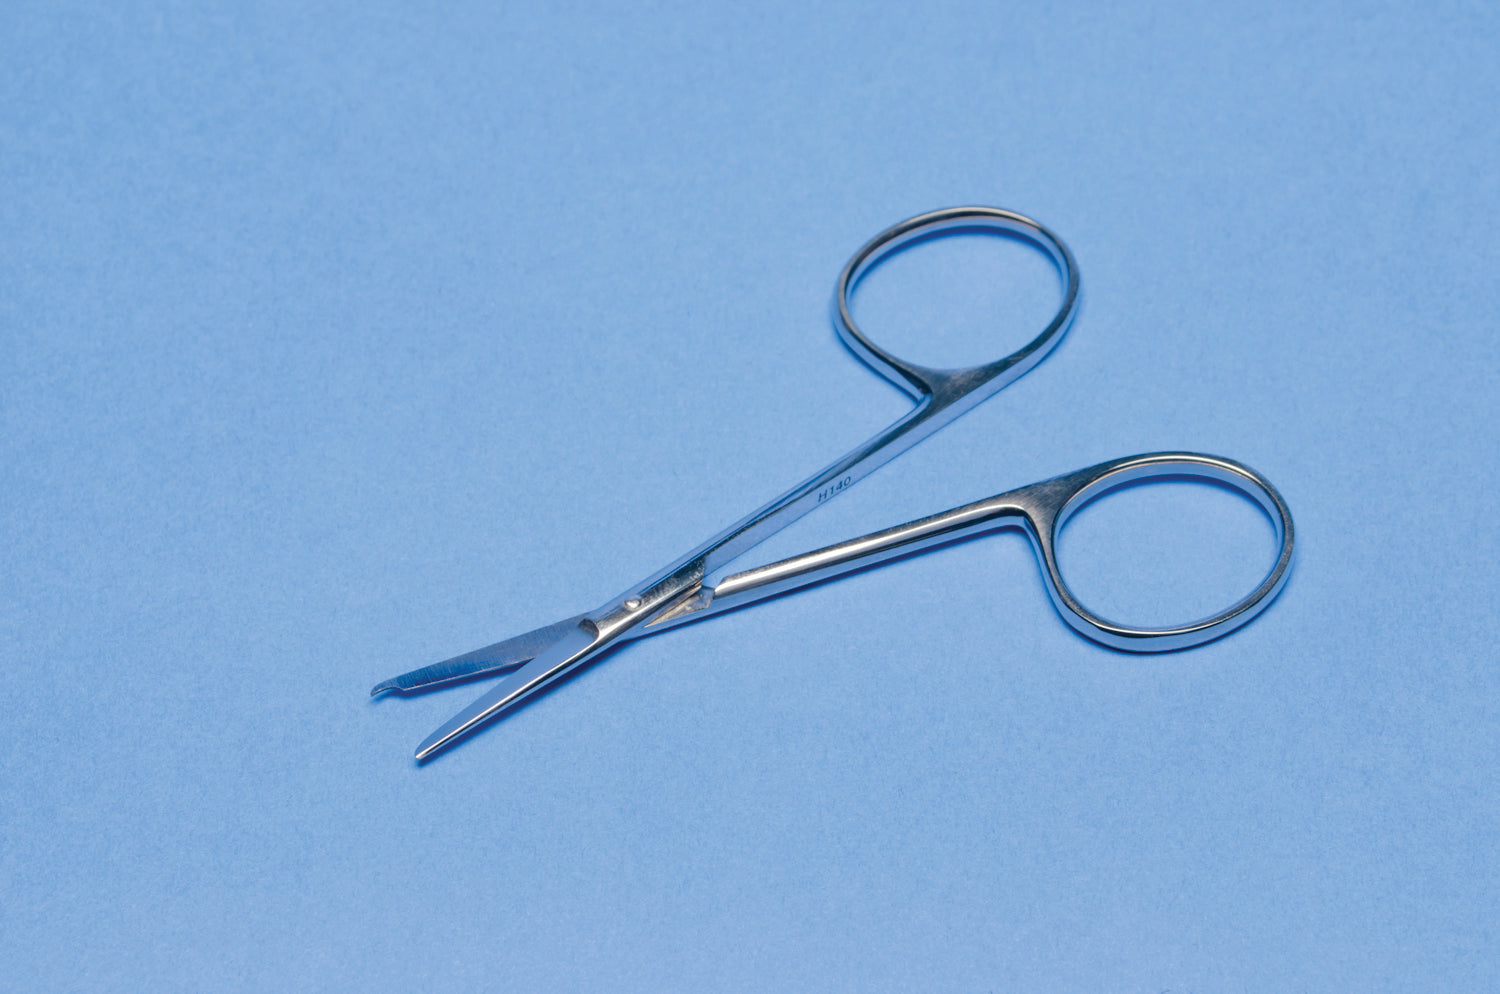 Spencer Stitch Scissors (M9100)-Pro-Optics LLC